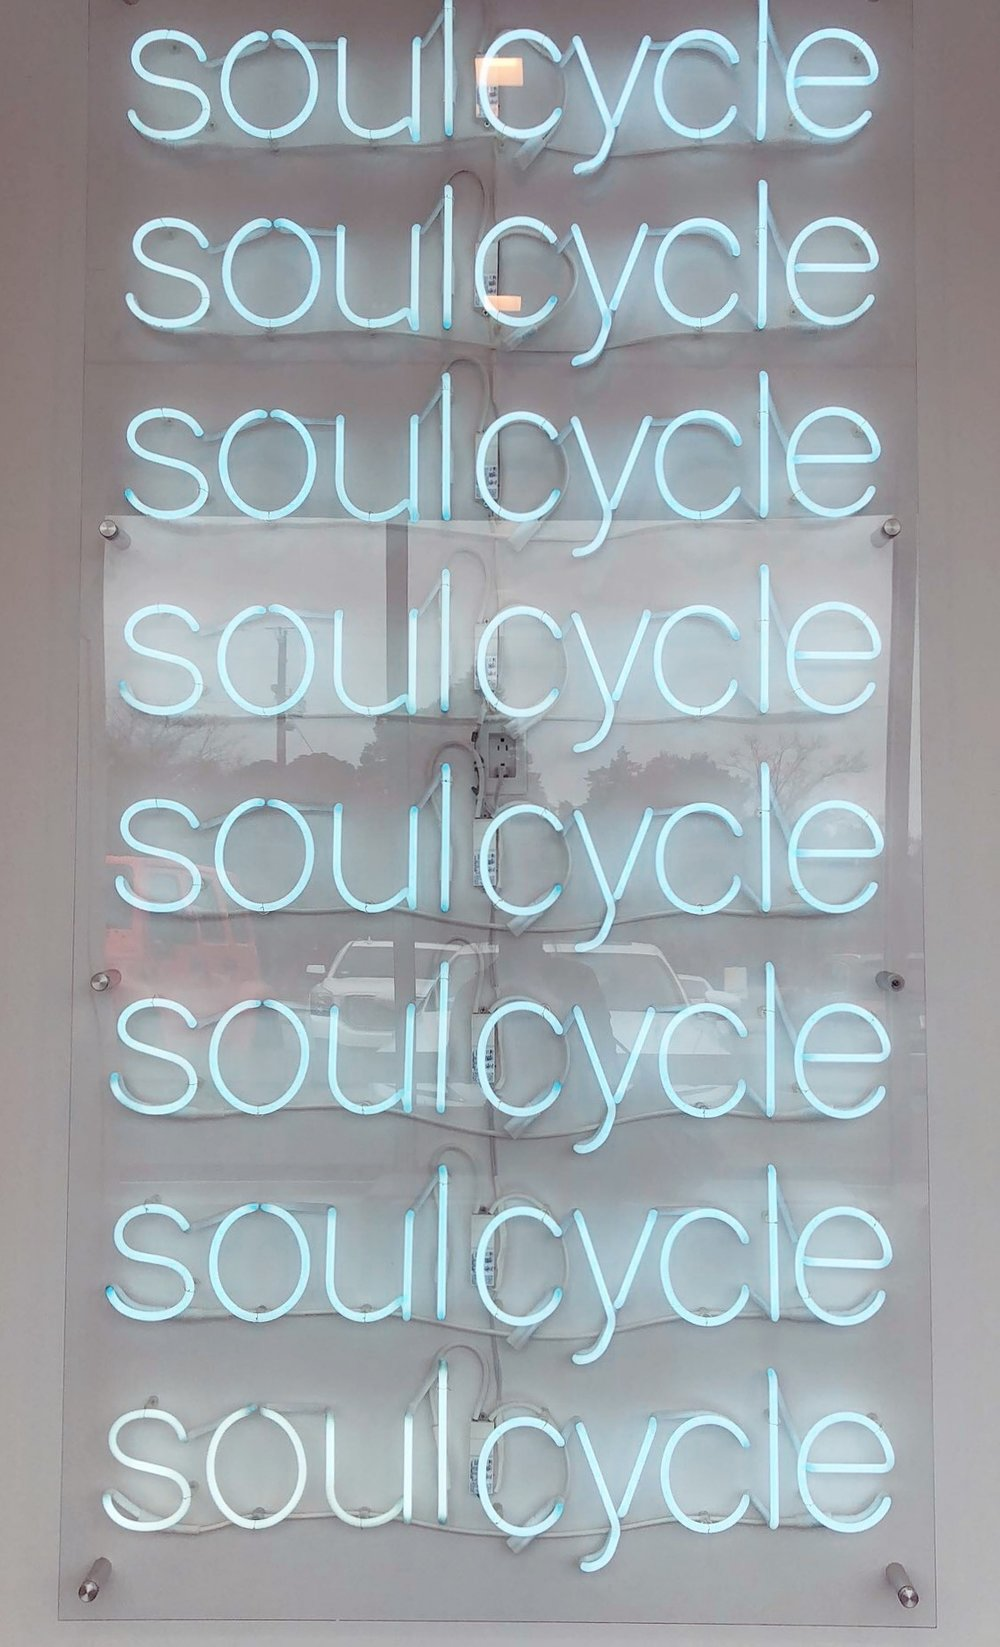 Soul Cycle.This was my first Soul Cycle class ever. I have been wanting to do one for so long but they do not have one in my area. It was so hard but so much fun. I felt amazing and upbeat after leaving, excited for my next class. -